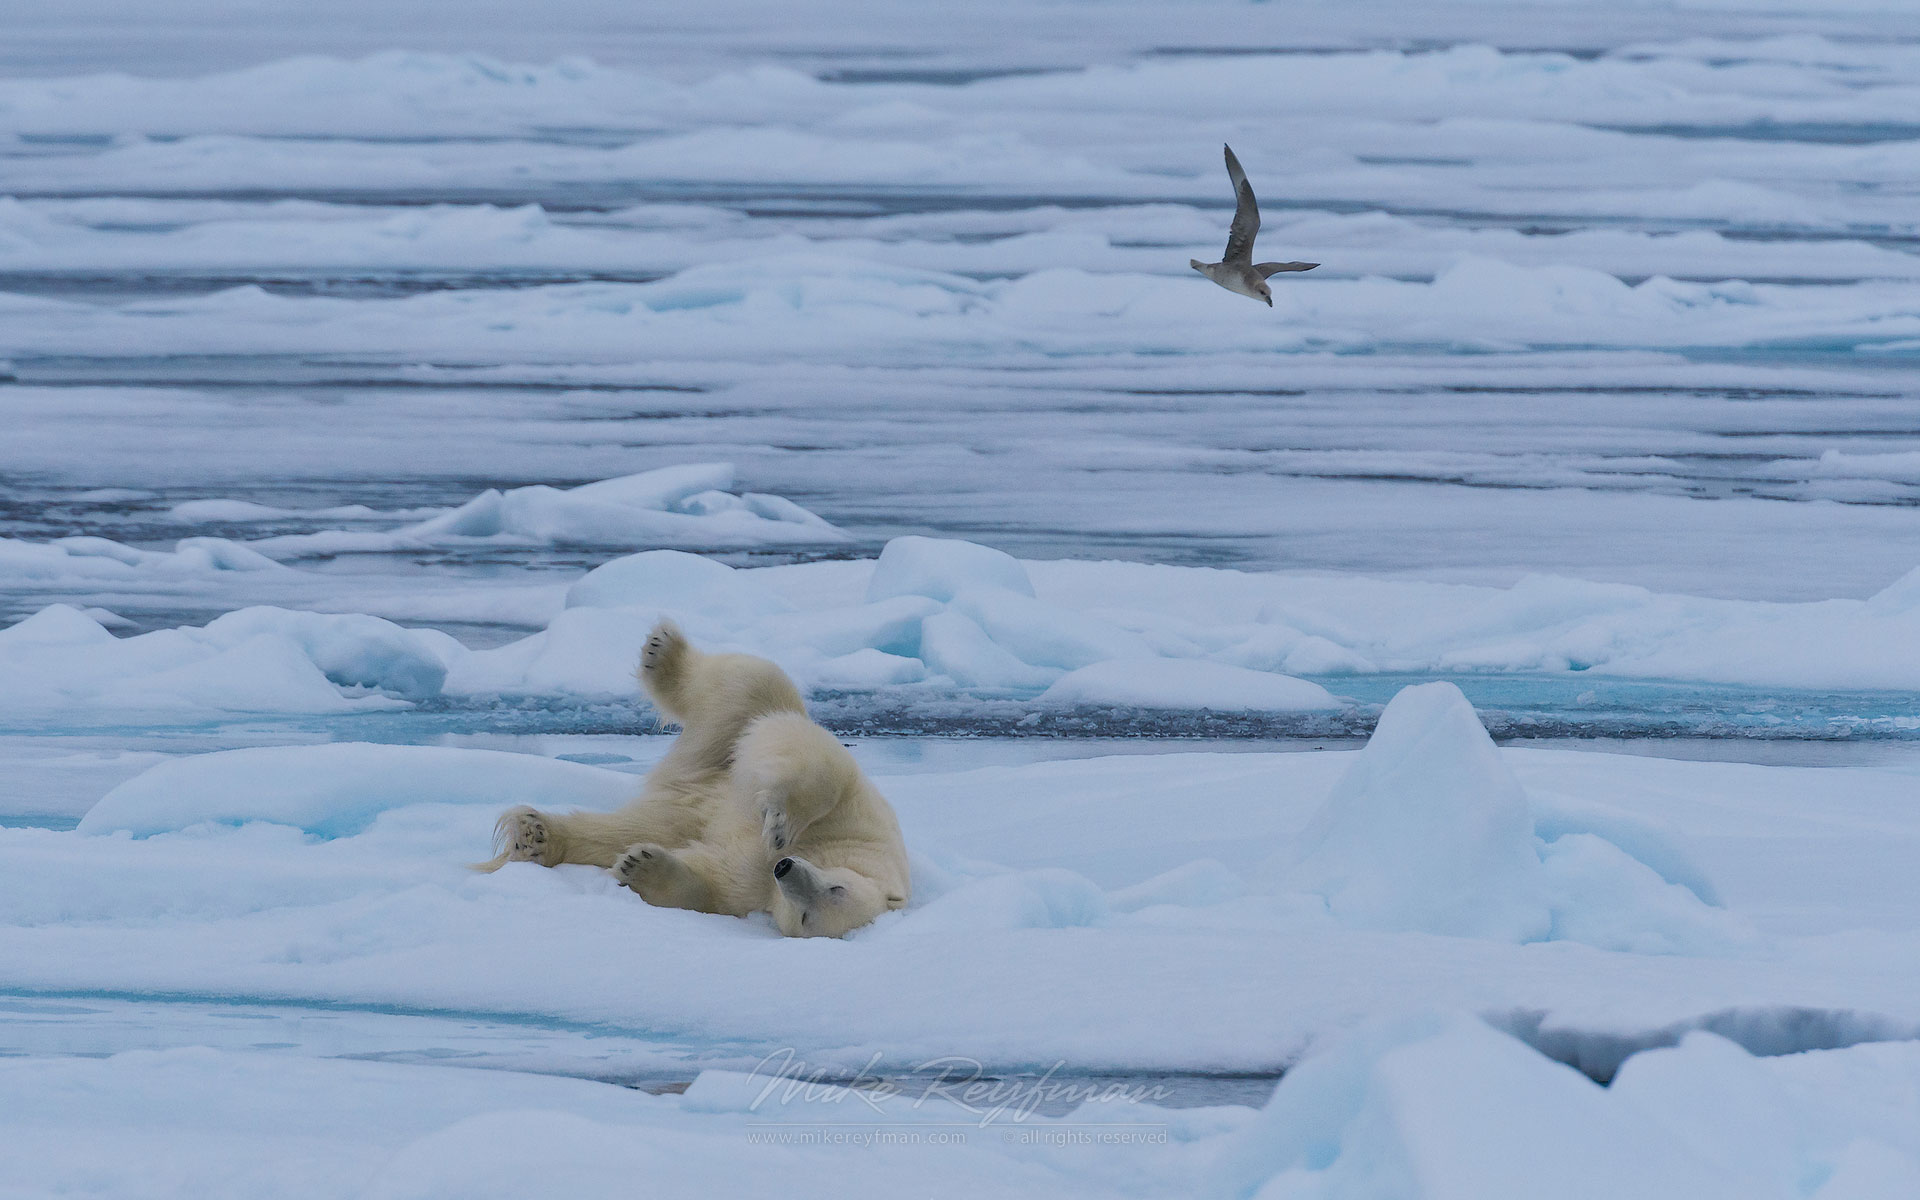 Polar Bear chilling on an ice floe in Svalbard, Norway. 81st parallel North. - Polar-Bears-Svalbard-Spitsbergen-Norway - Mike Reyfman Photography